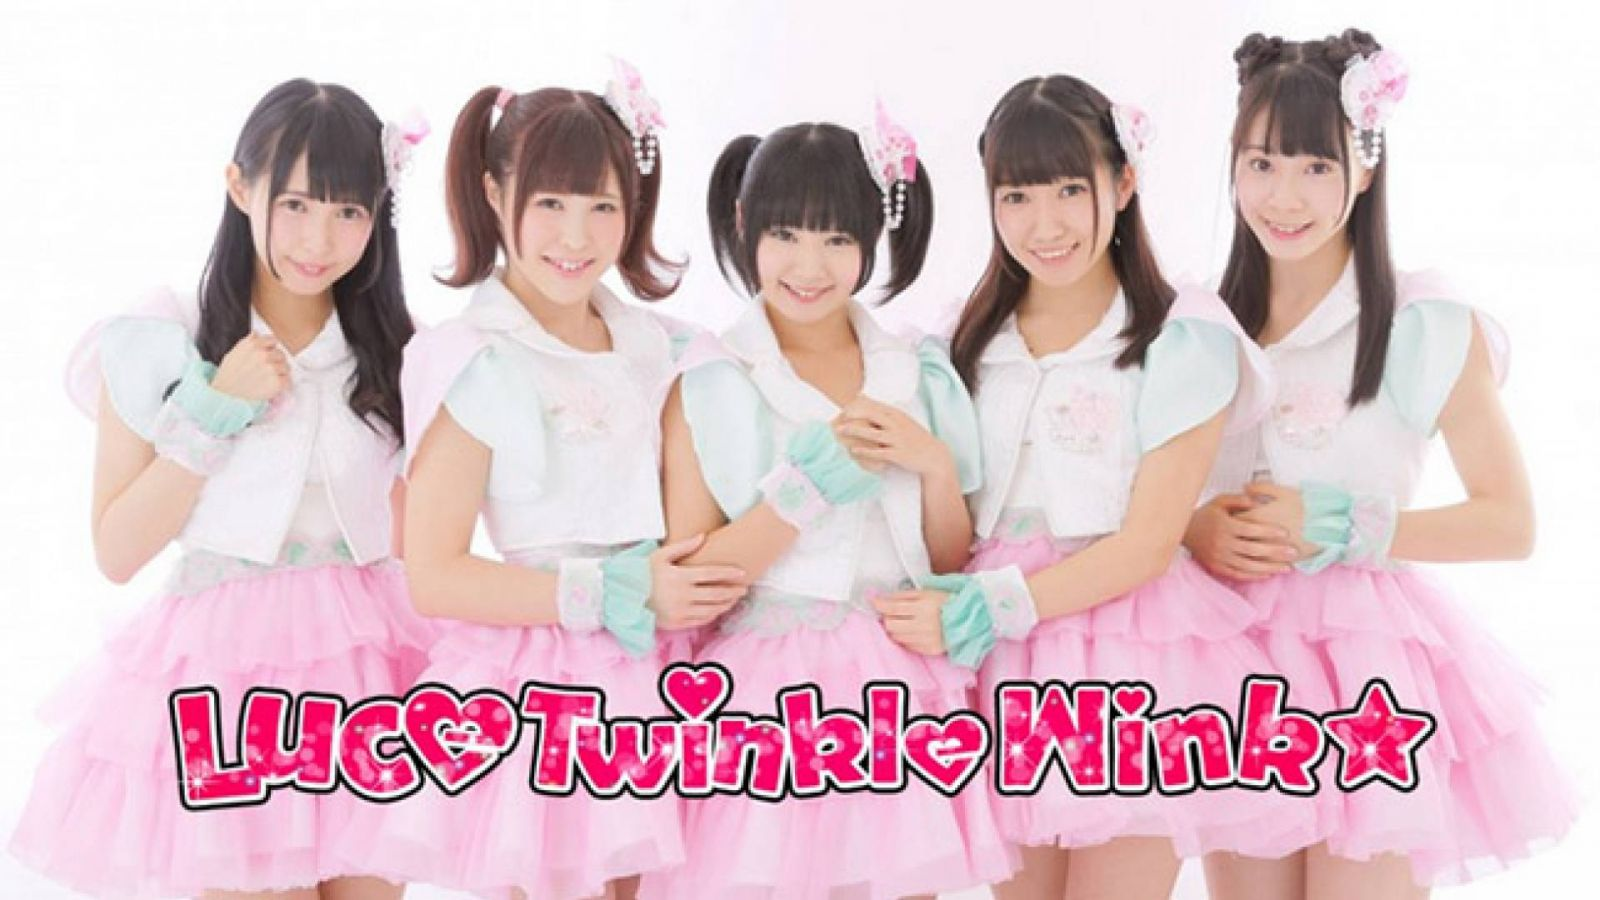 Luce Twinkle Wink☆ © Luce Twinkle Wink☆ - Arc Jewel - All rights reserved